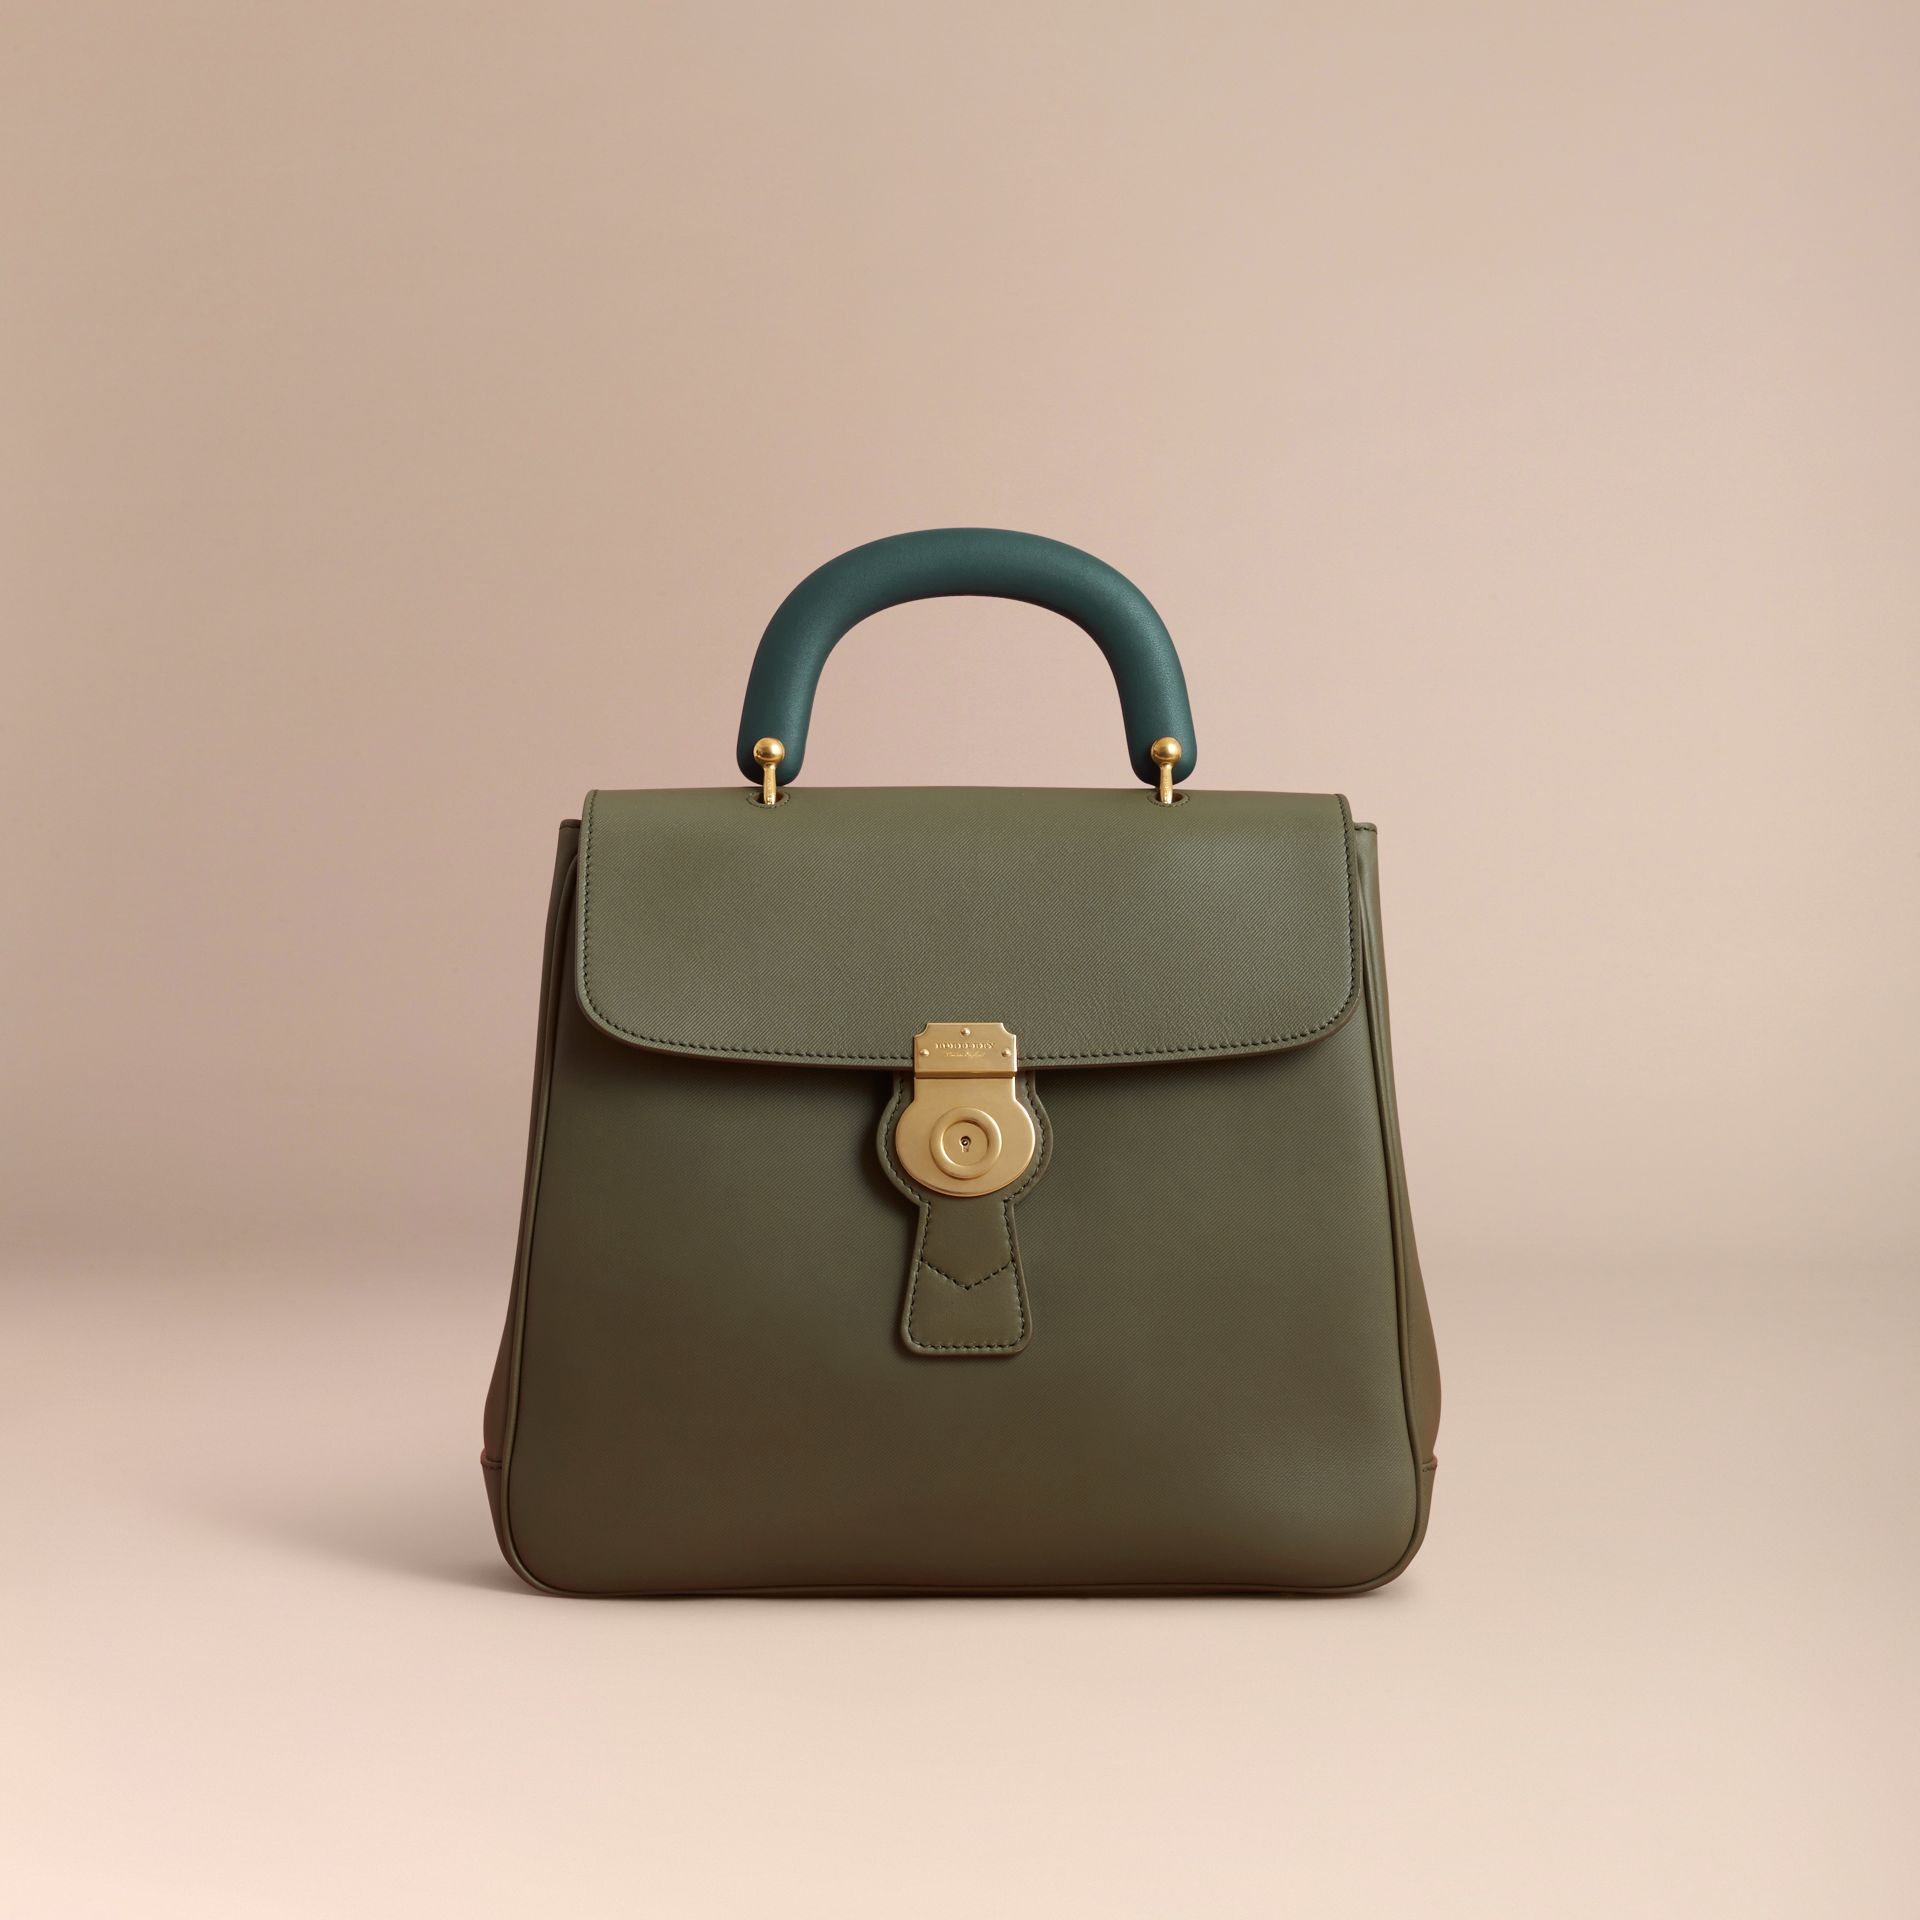 The Large DK88 Top Handle Bag in Moss Green - Women | Burberry Australia - gallery image 7